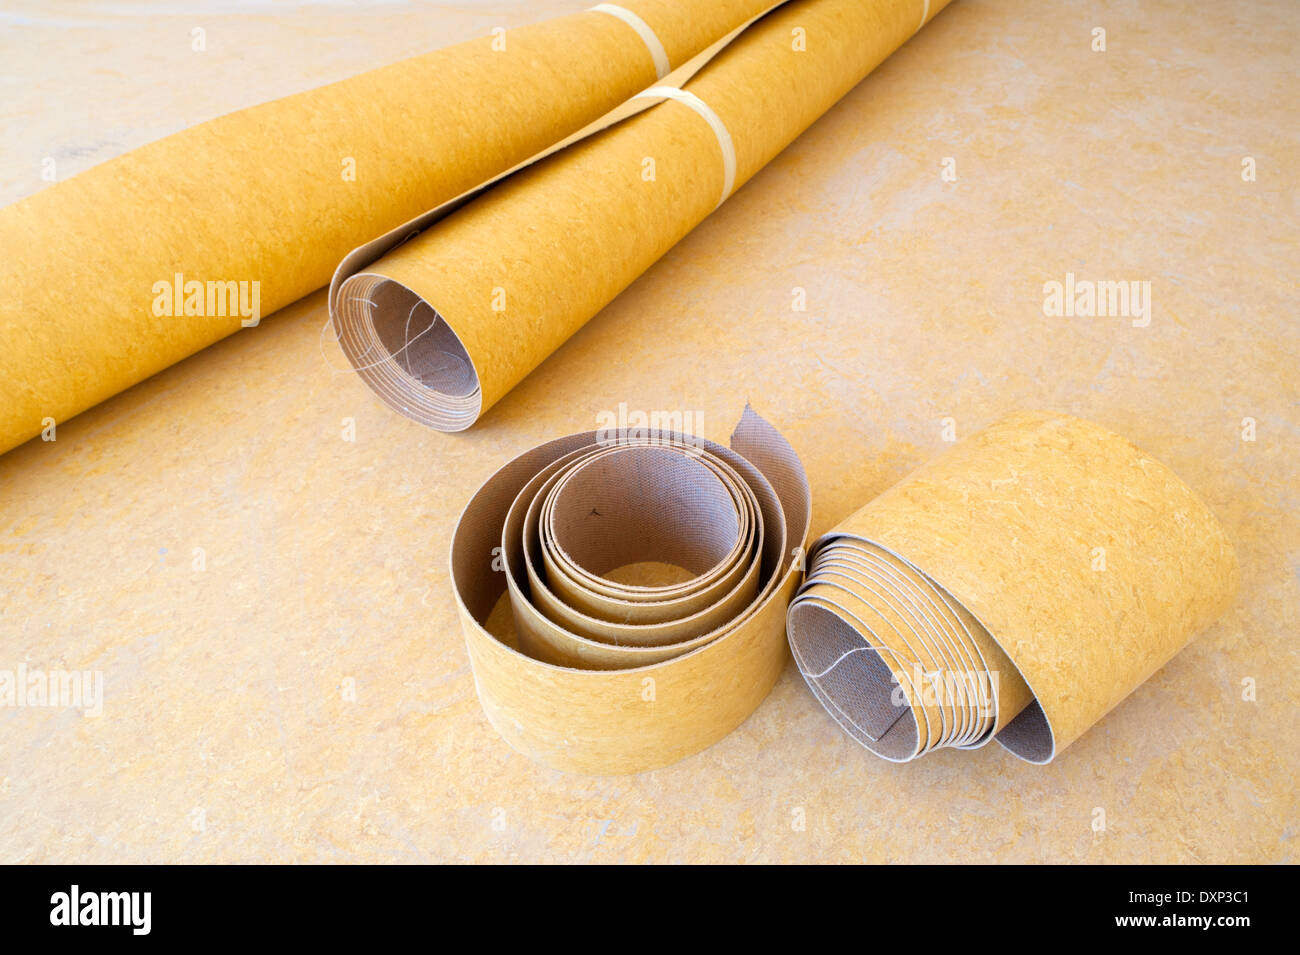 Linoleum Flooring Stock Photos Amp Linoleum Flooring Stock